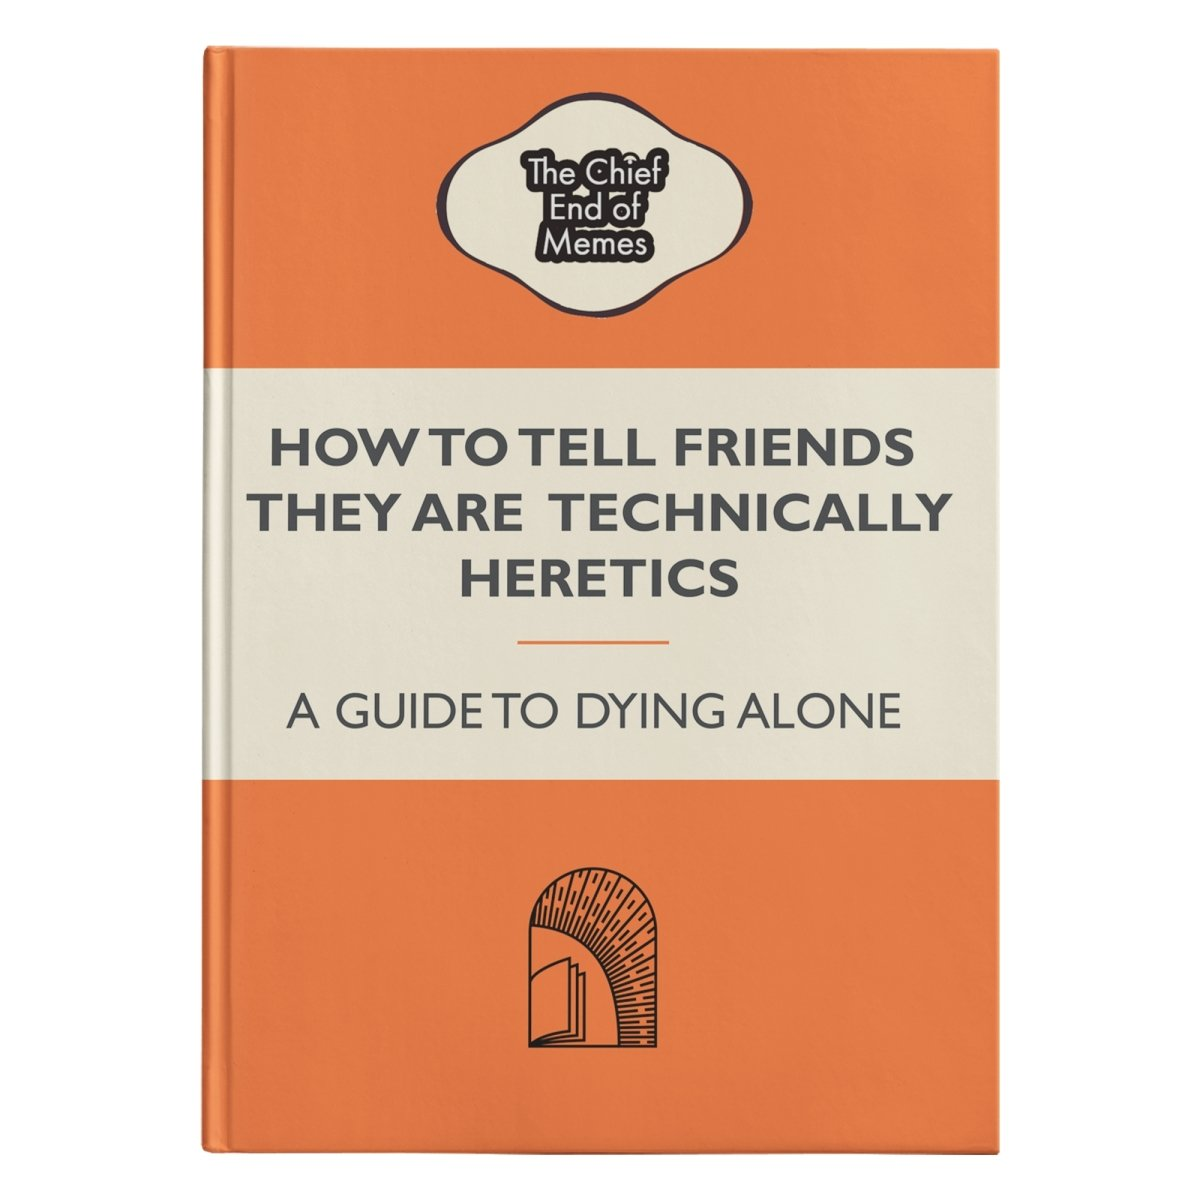 How to Tell Friends They are Technically Heretics (150 page Hardcover Journal) - SDG Clothing